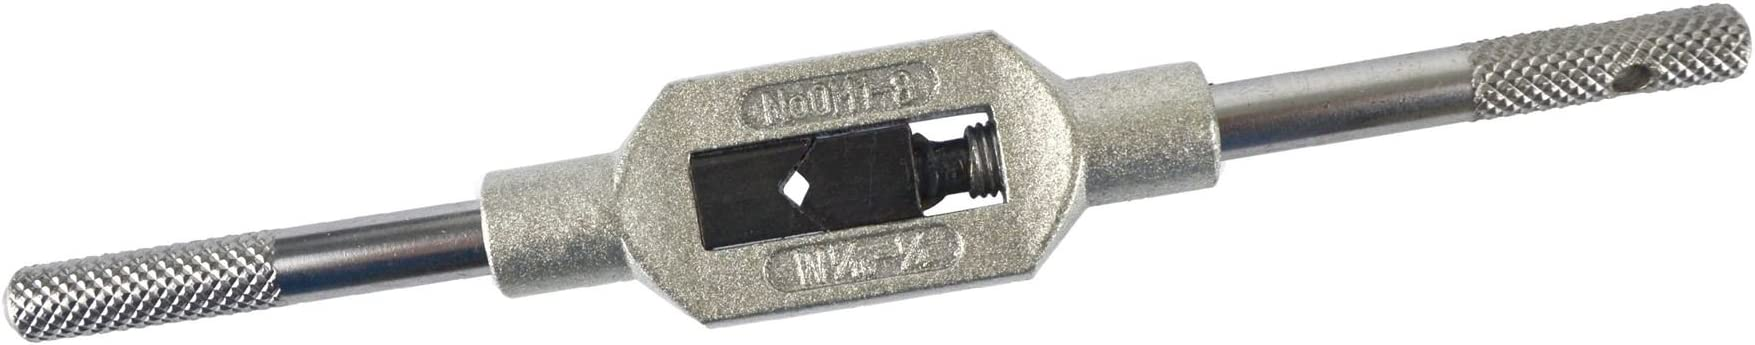 """M12 1//2/"""" Tap And Die Re-thread AT304 3//16/"""" Tap Wrench Fully Adjustable M4"""